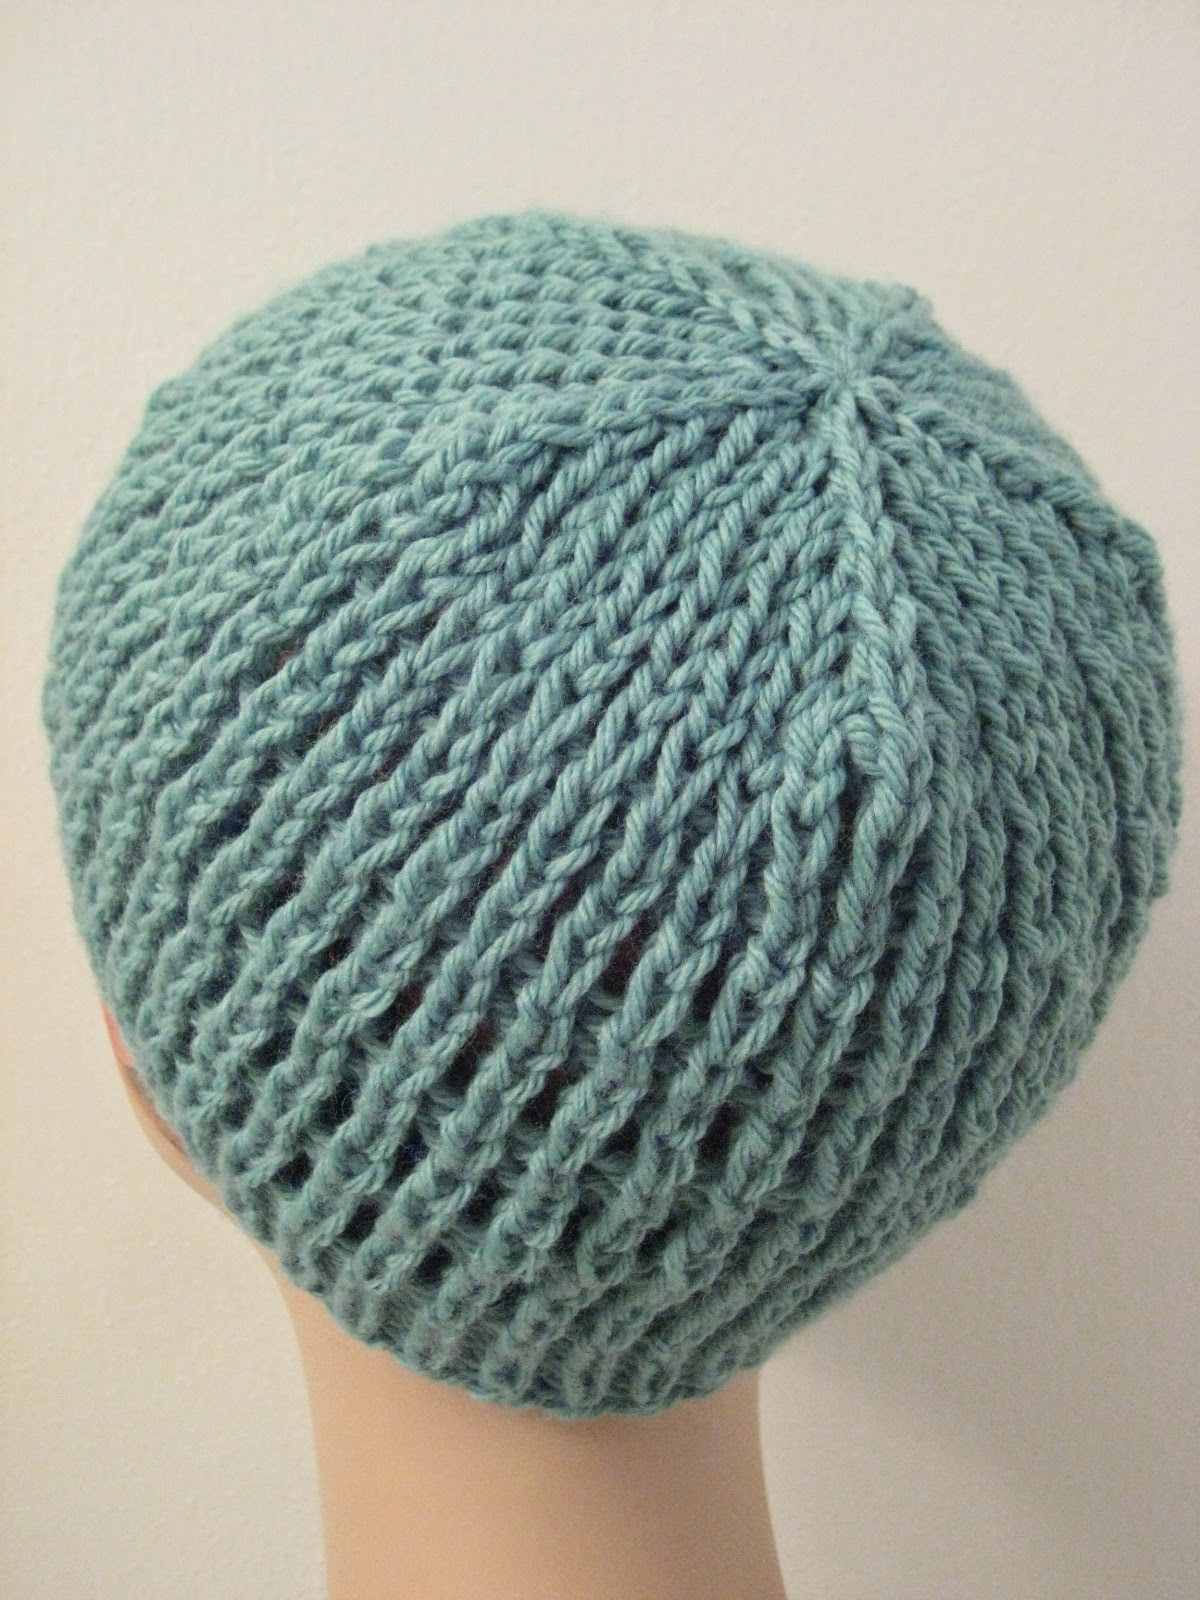 Slip Stitch Knit Hat Pattern : Balls to the Walls Knits: Slip-Stitch Mesh Hat